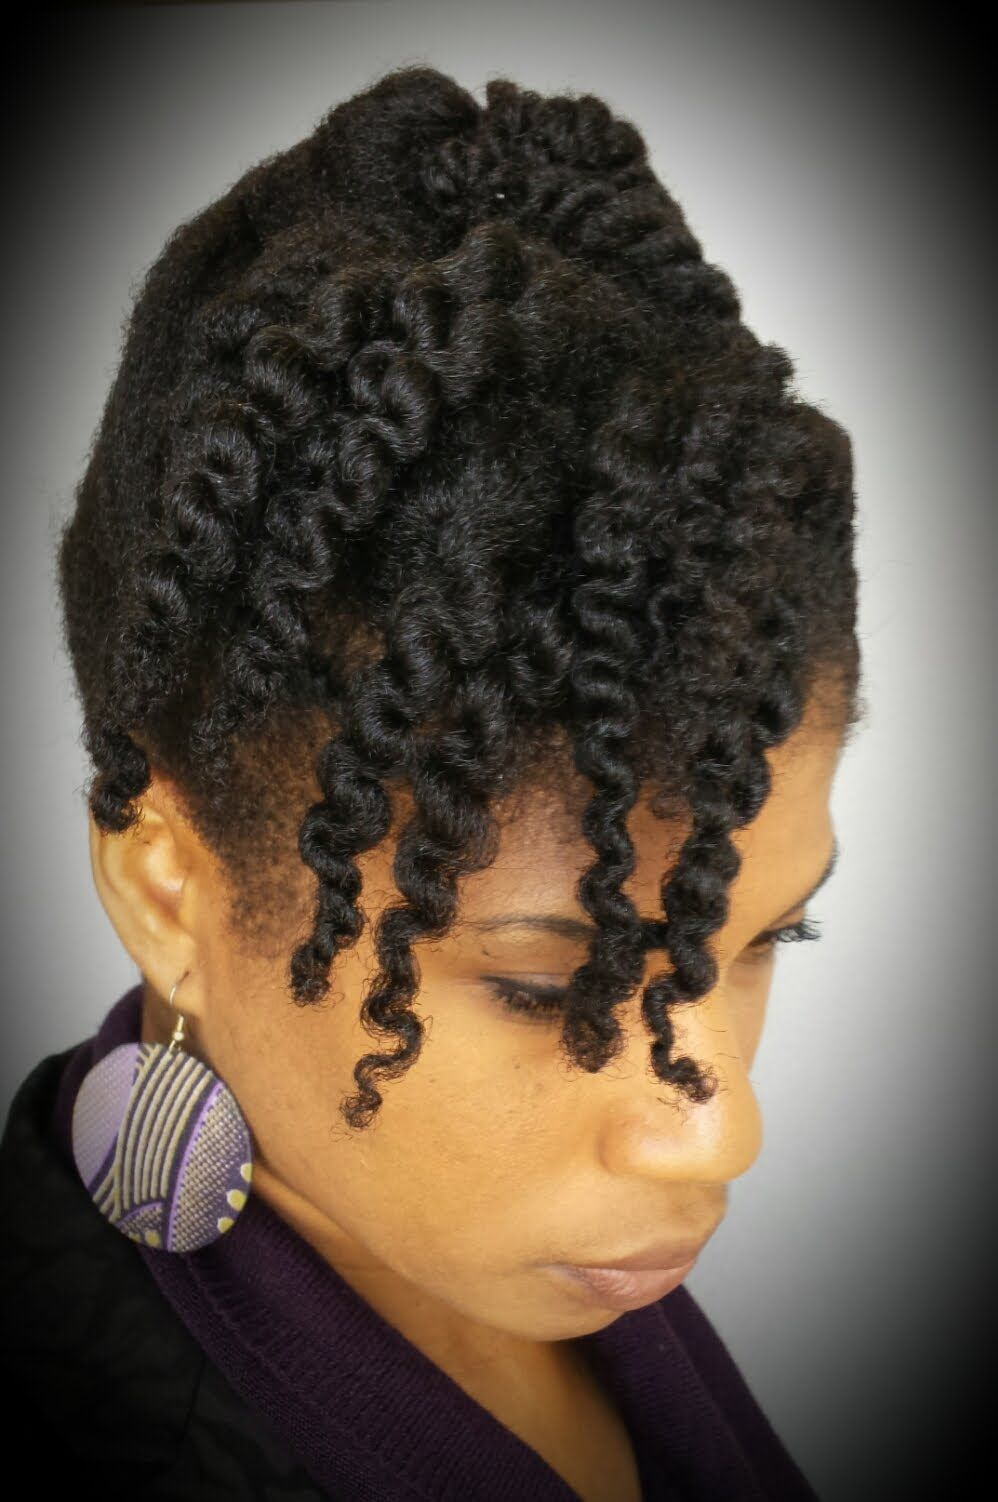 4 Natural Hair 10 Minute Cornrow And Twist Updo Protective Style Natural Hair Styles Thin Fine Hair Protective Hairstyles For Natural Hair